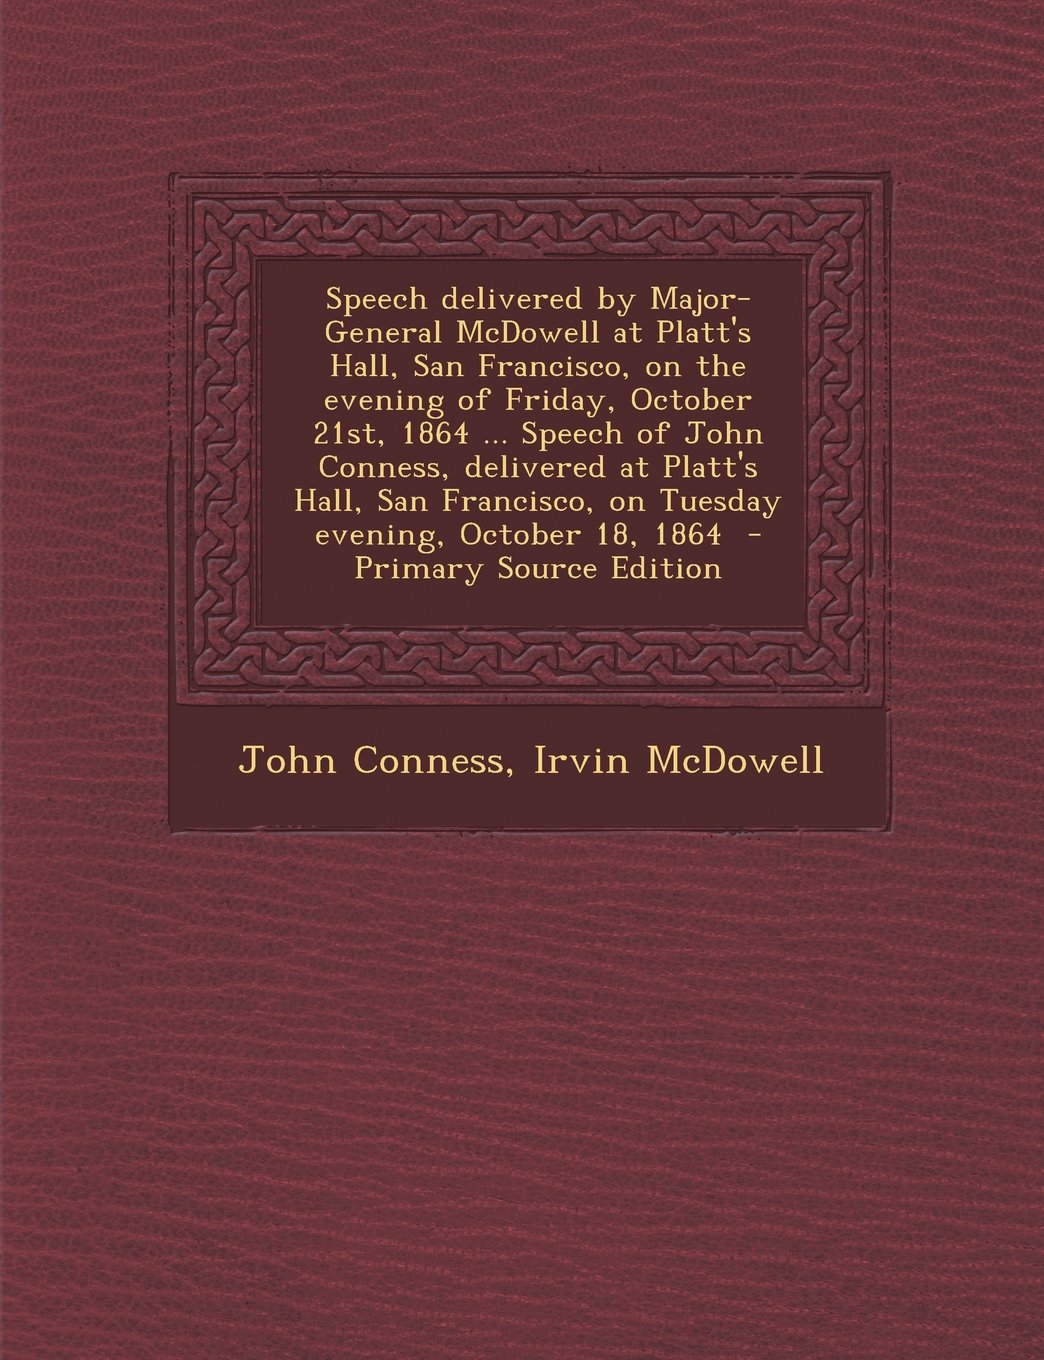 Download Speech delivered by Major-General McDowell at Platt's Hall, San Francisco, on the evening of Friday, October 21st, 1864 ... Speech of John Conness, ... October 18, 1864  - Primary Source Edition pdf